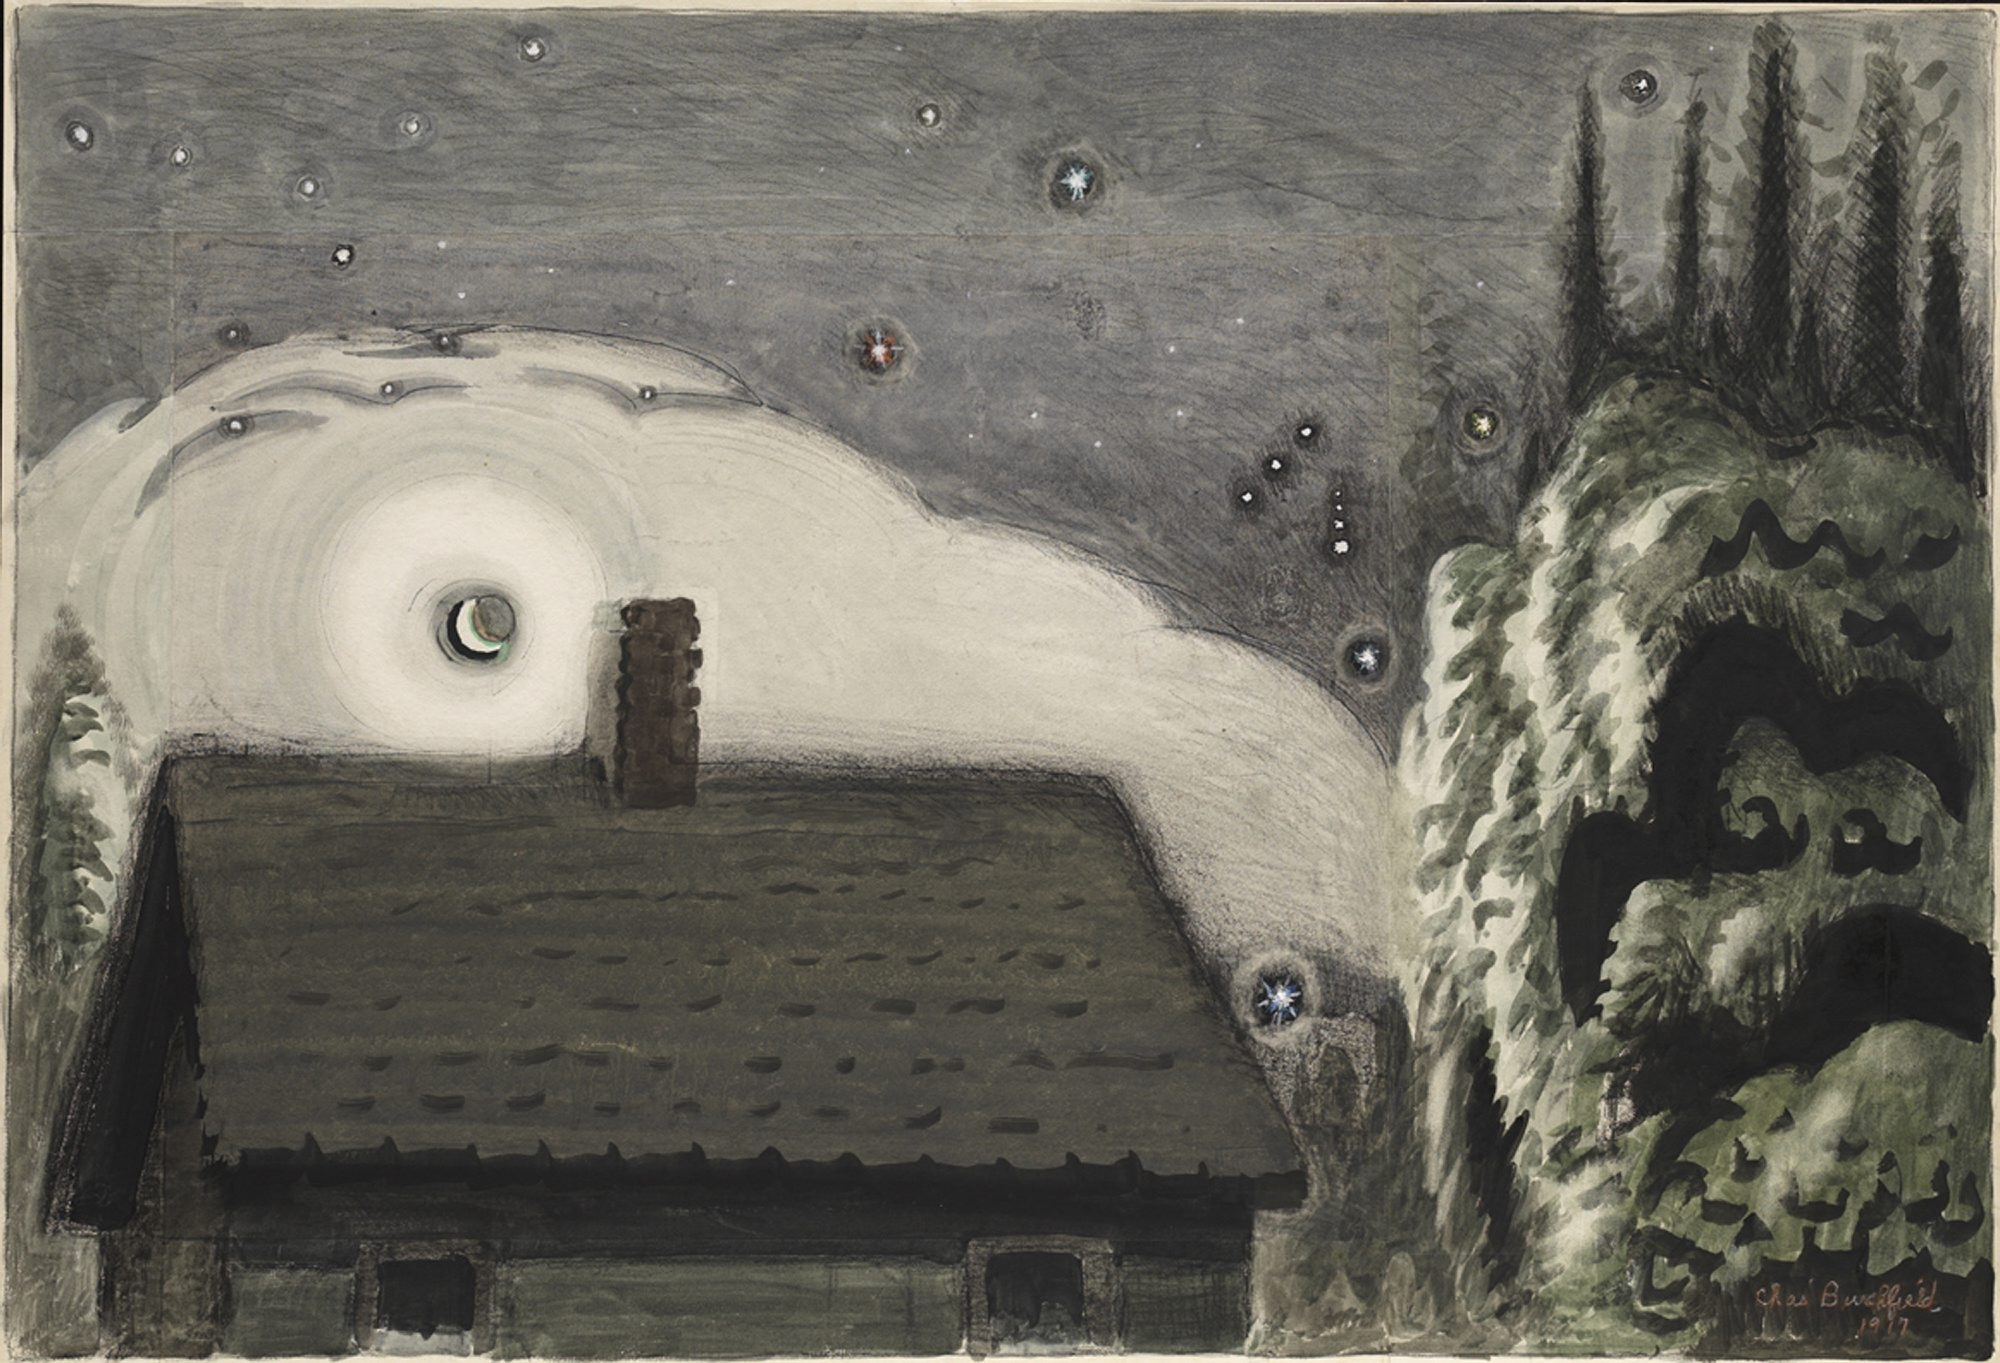 'Orion and the Moon,' a 1917 painting by Charles E. Burchfield, goes on view in the Burchfield Penney Art Center on Friday April 12 as part of the exhibition 'Charles E. Burchfield: Oh My Heavens.'